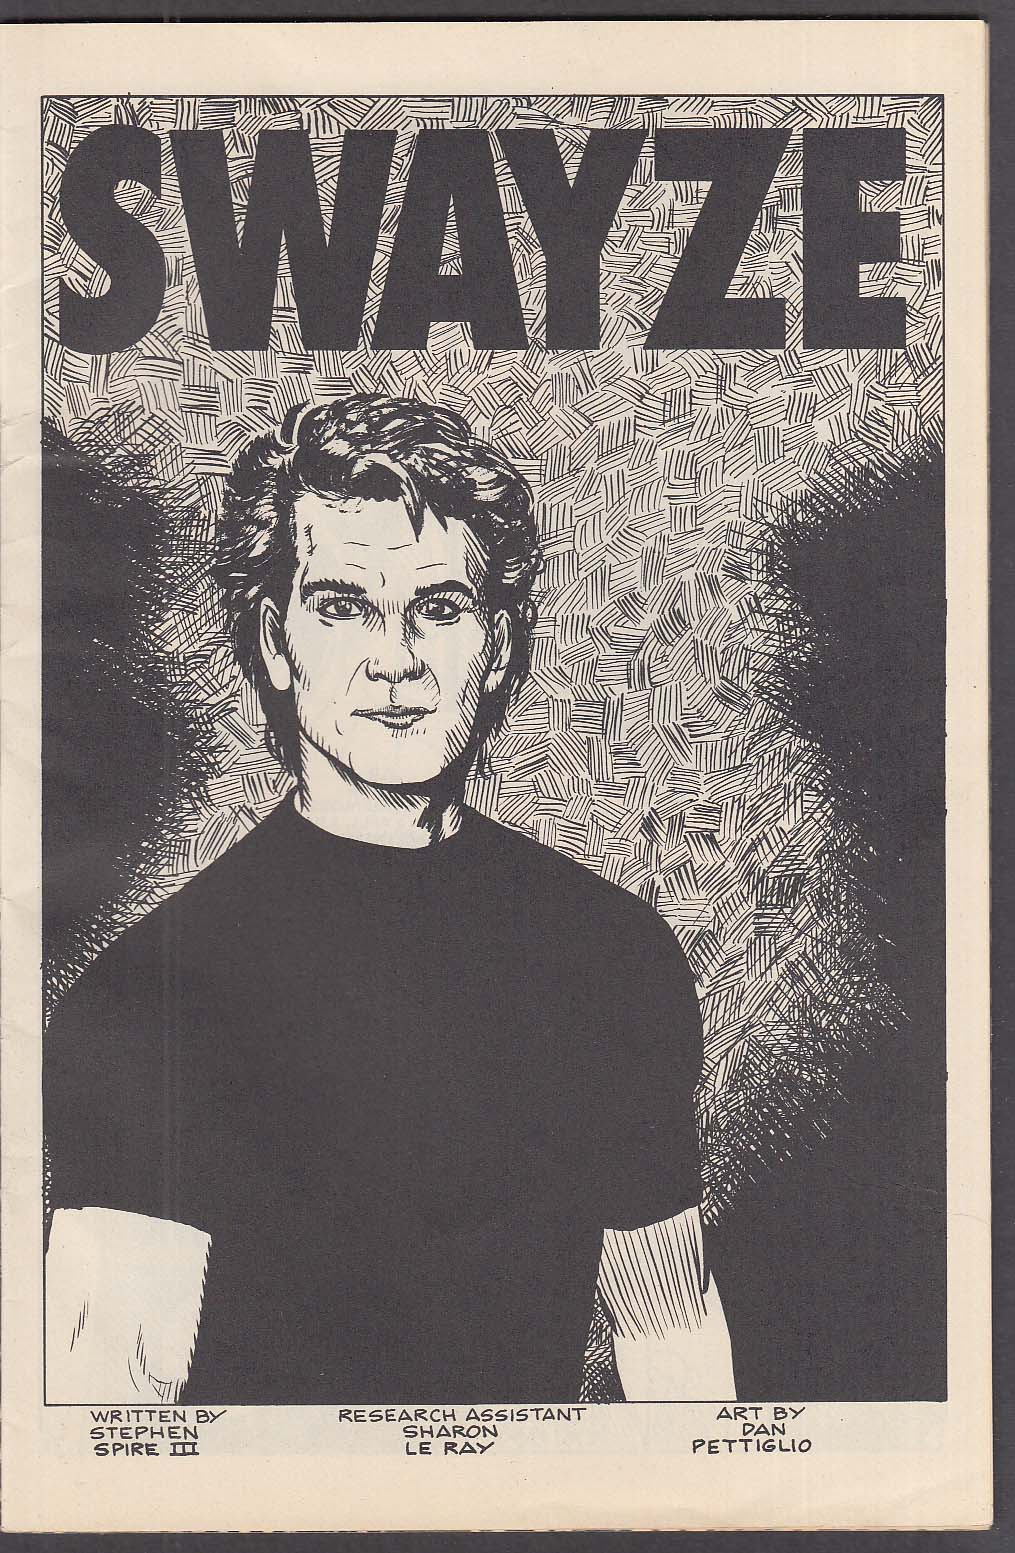 PERSONALITY COMICS PRESENTS Patrick Swayze & Demi Moore comic book 1991